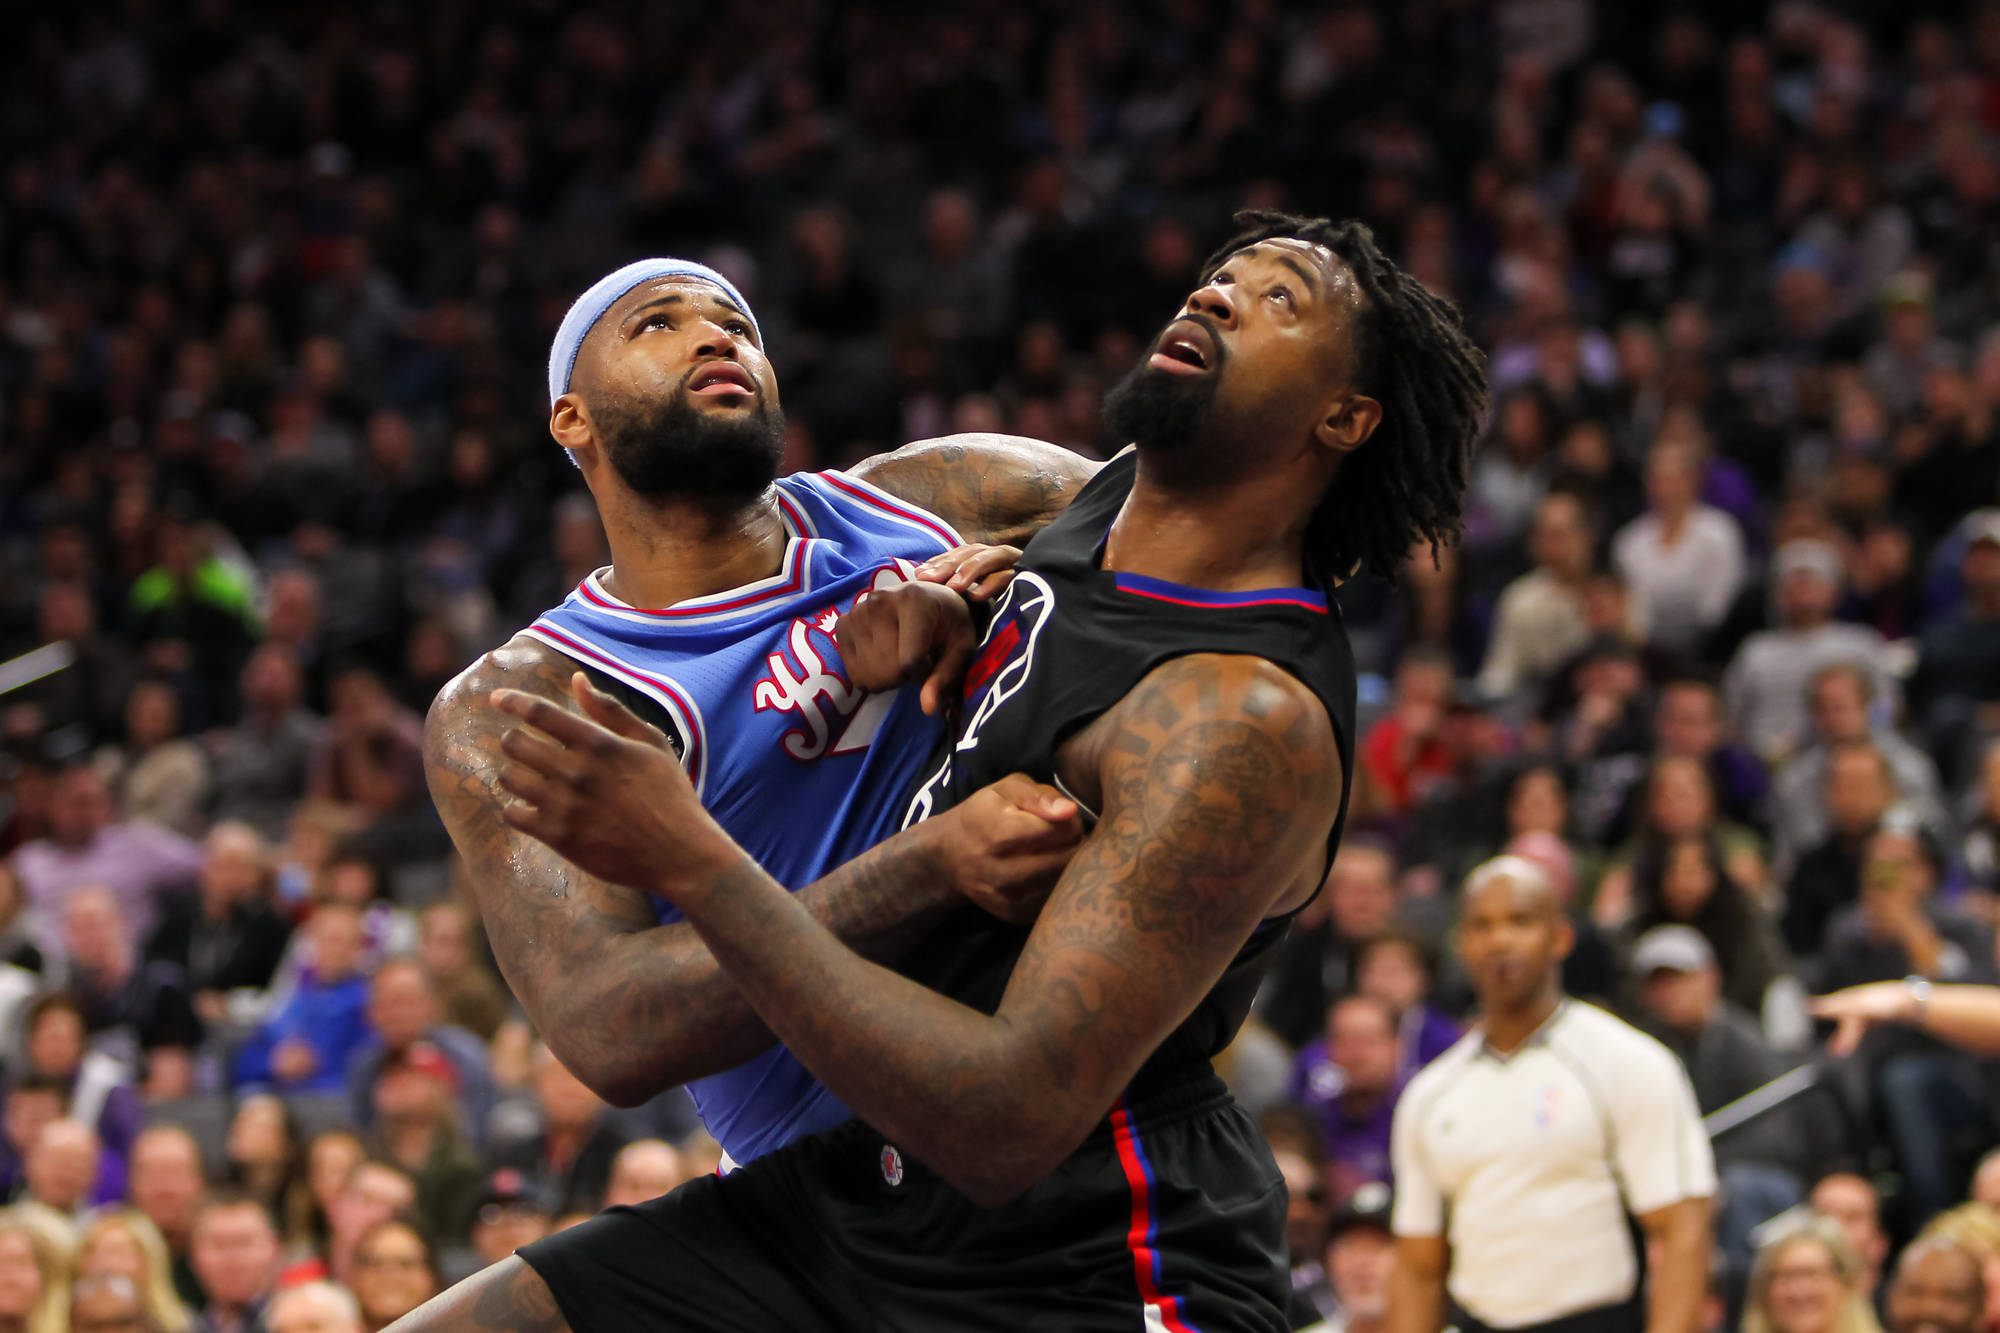 Sacramento Kings lose to the Los Angeles Clippers